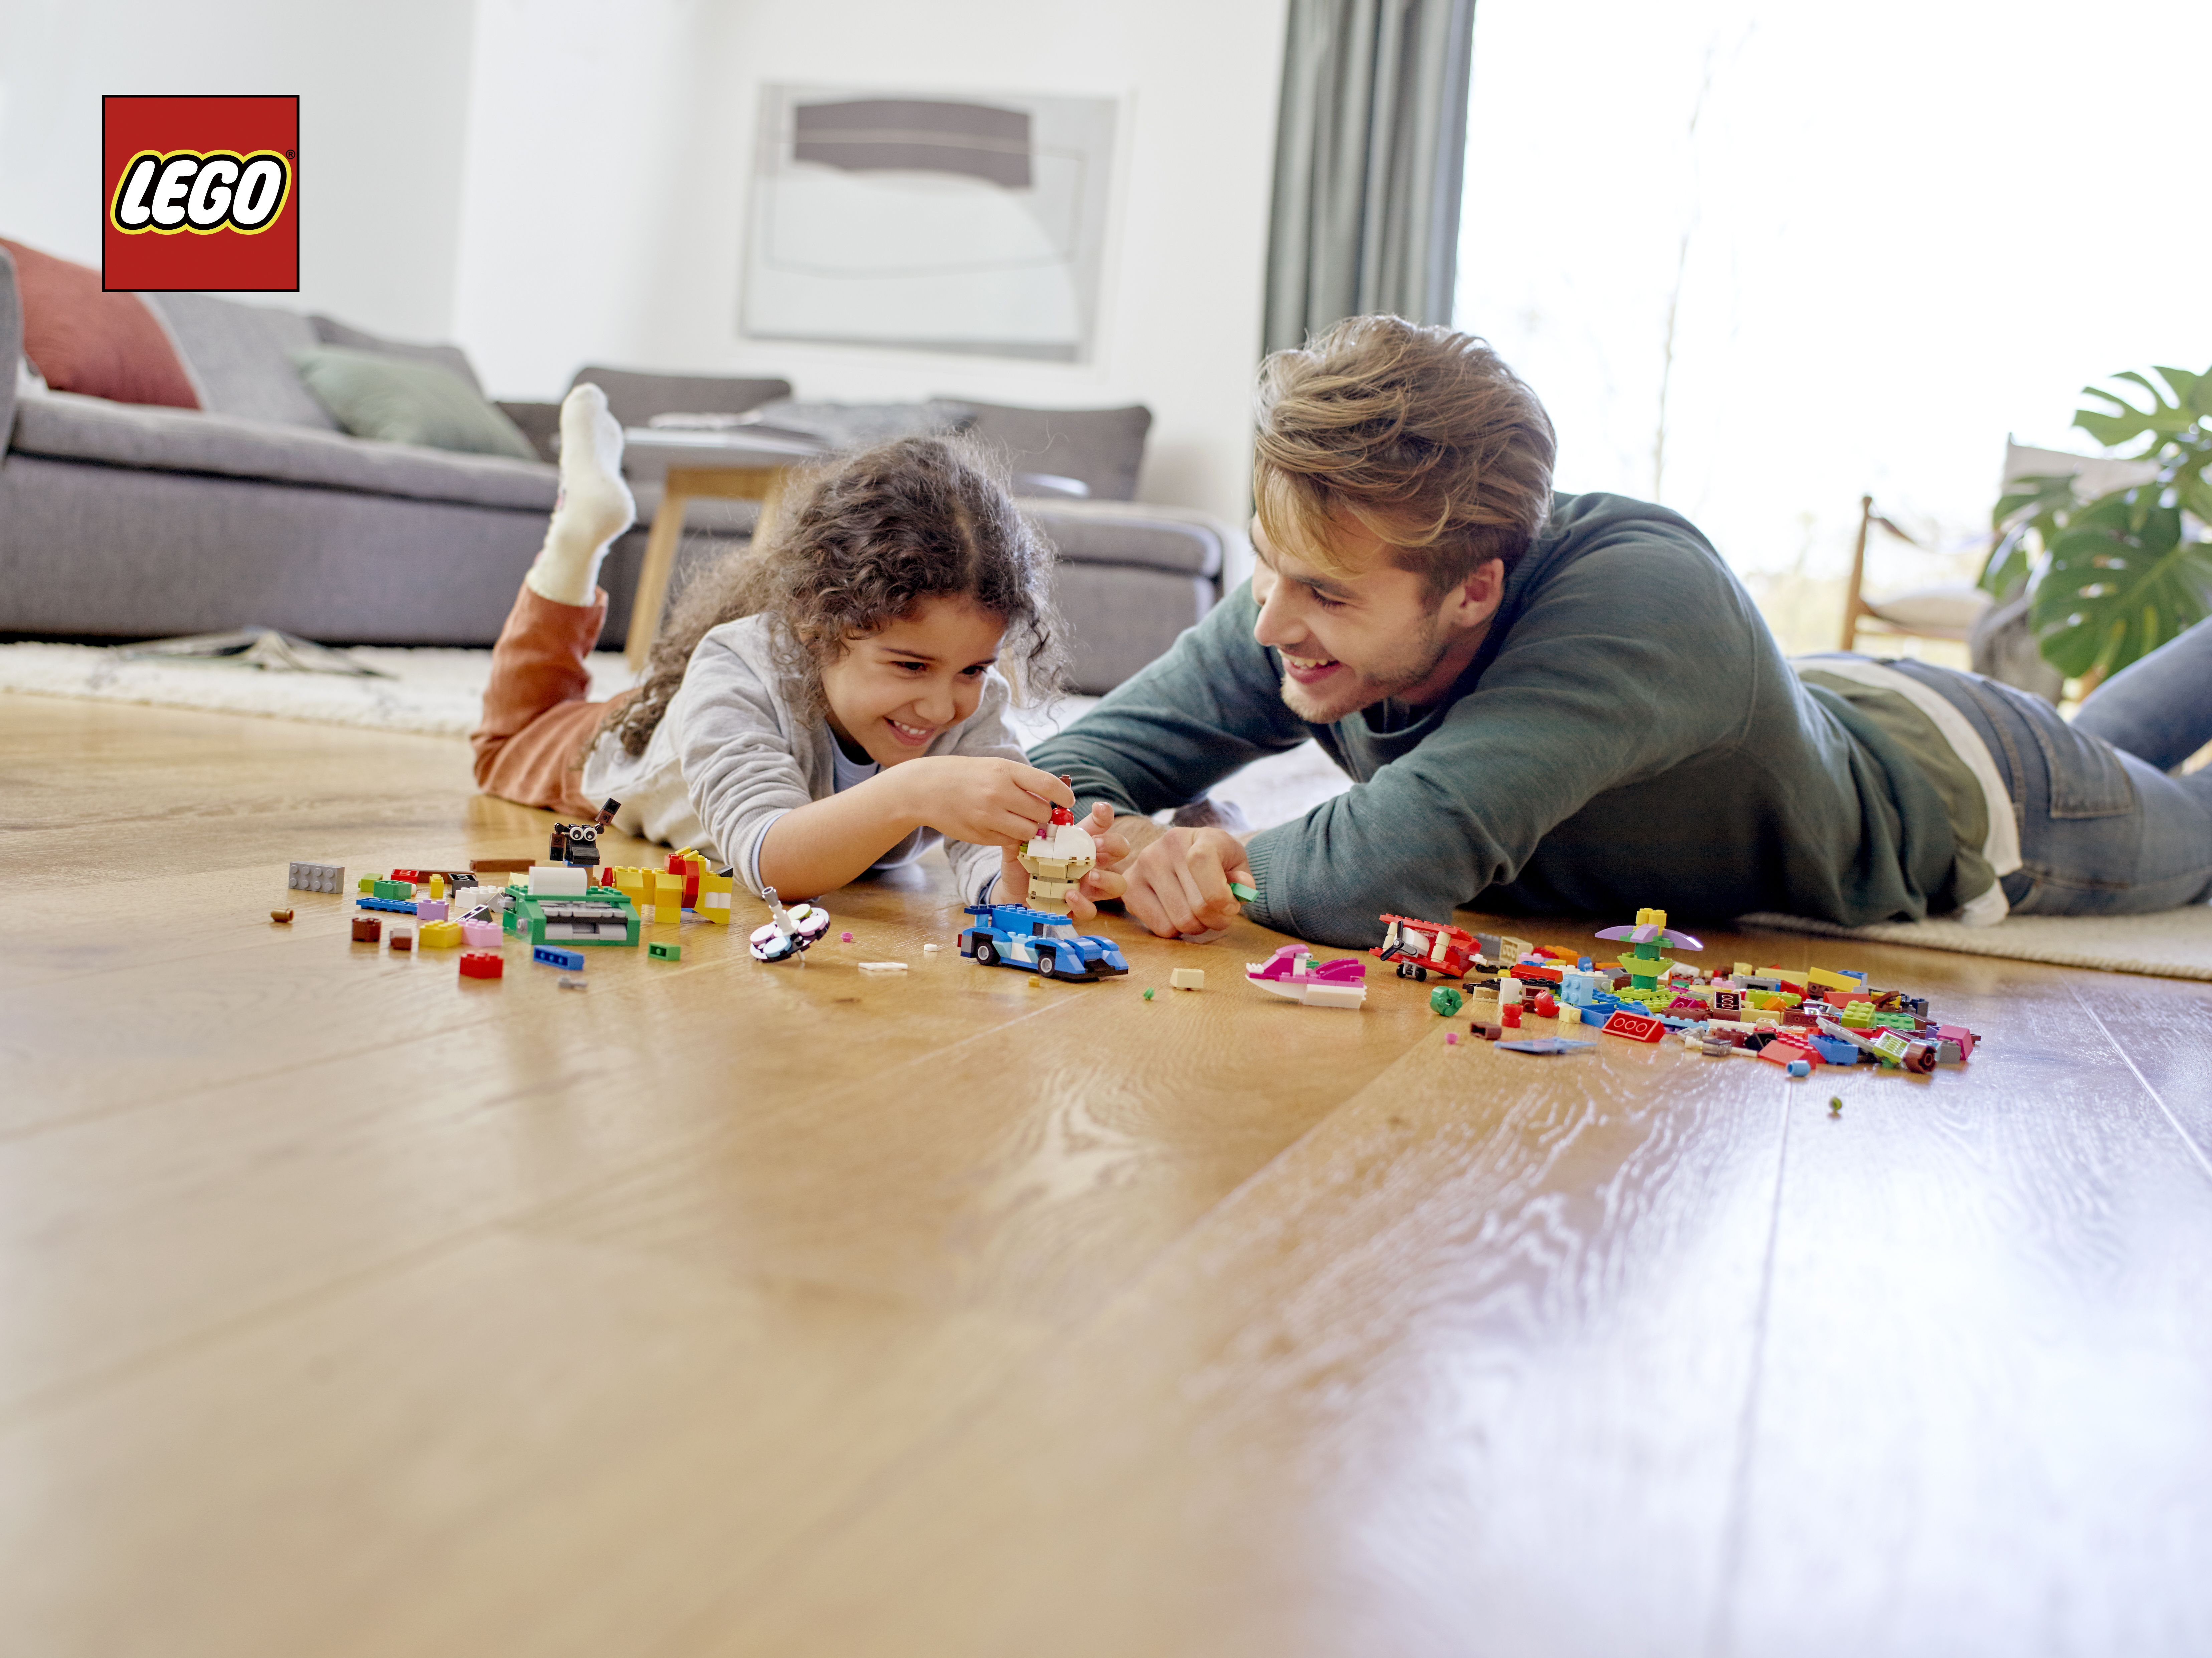 LEGO Supports Playing at Home